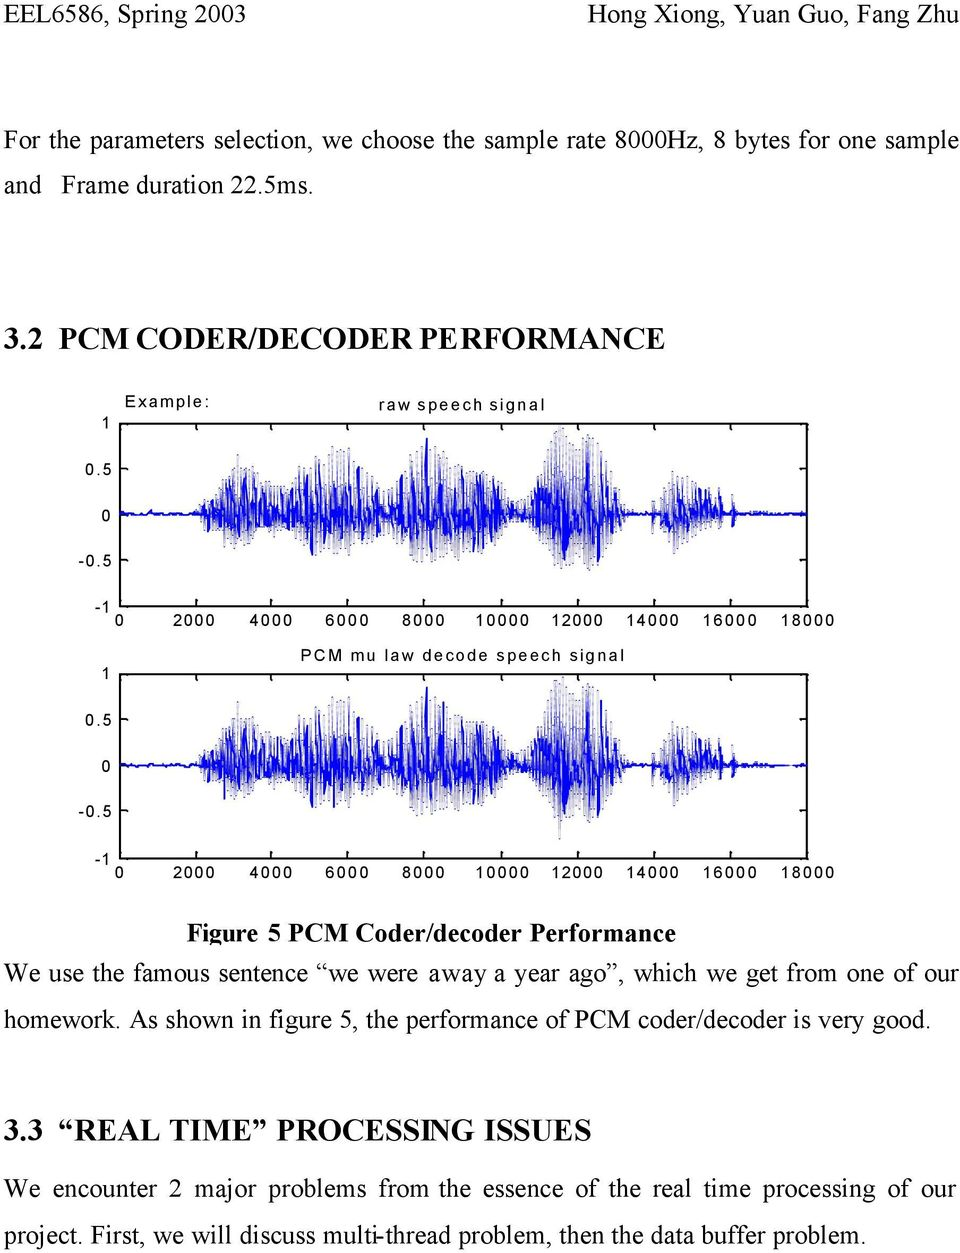 5-1 0 2000 4000 6000 8000 10000 12000 14000 16000 18000 Figure 5 PCM Coder/decoder Performance We use the famous sentence we were away a year ago, which we get from one of our homework.